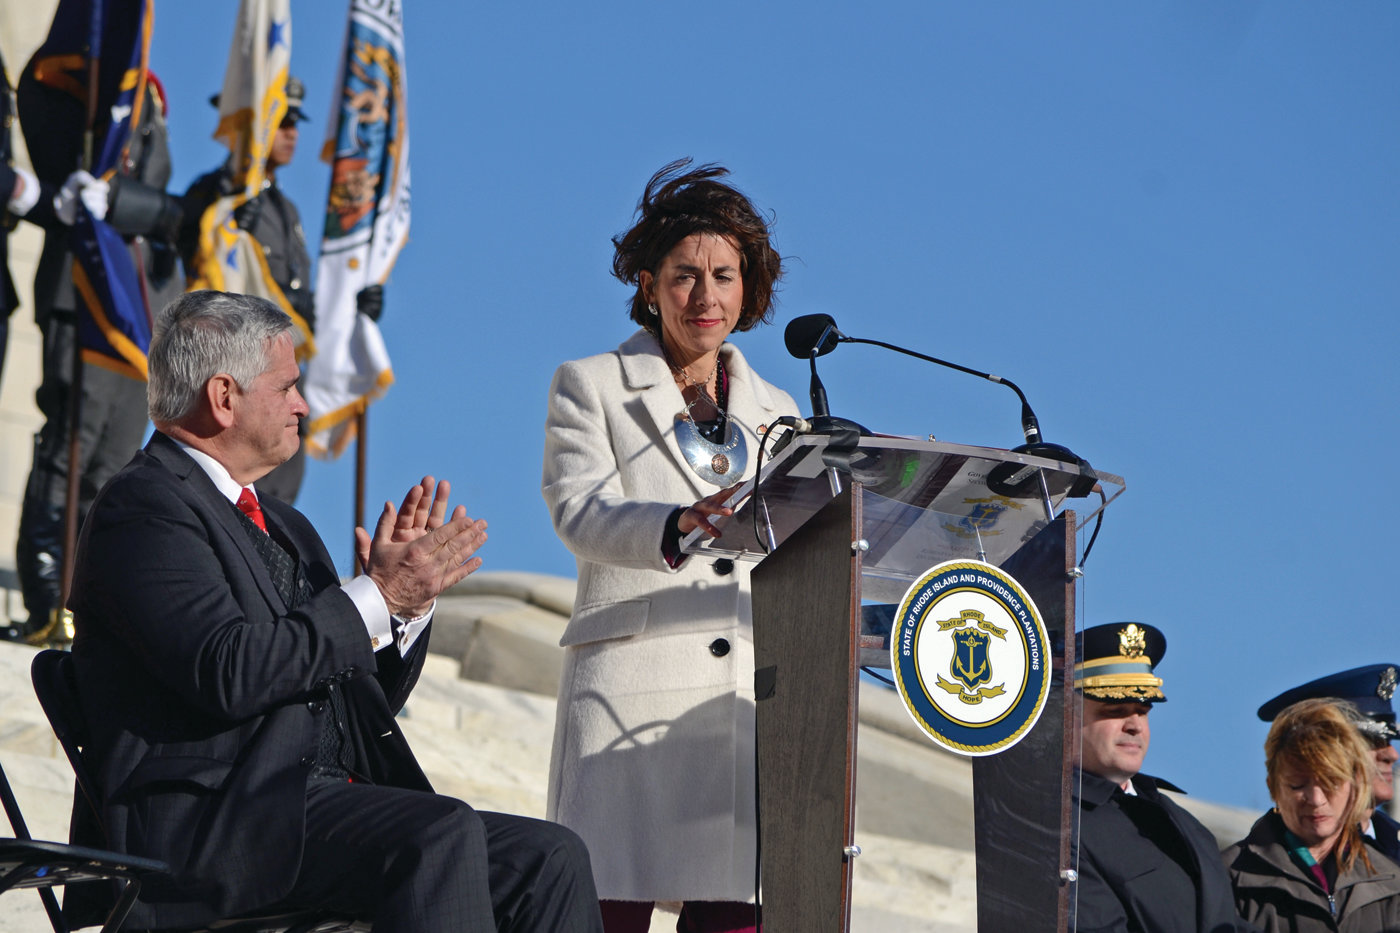 HOPE FOR THE FUTURE: Governor Gina Raimondo addresses the crowd as the strong winds gusted through Providence on Tuesday afternoon.